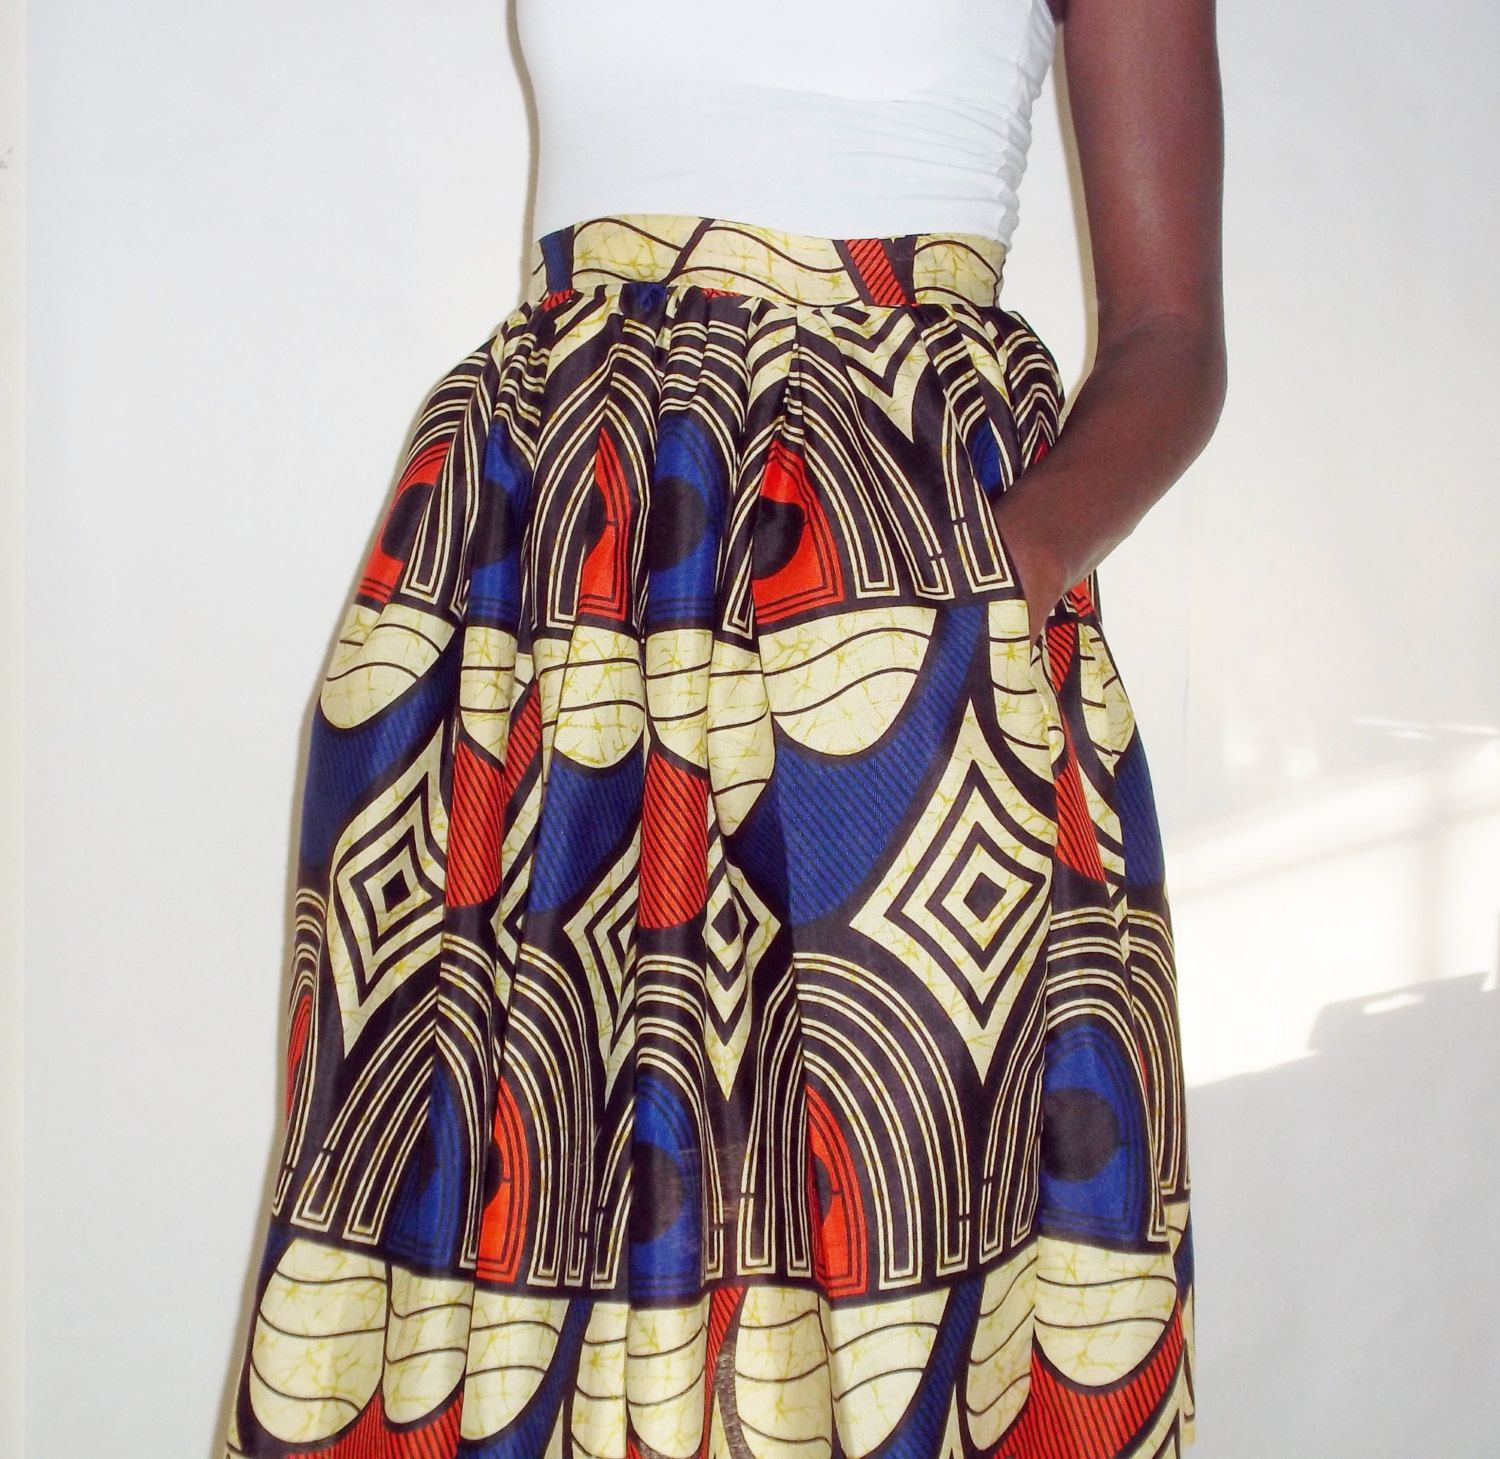 Ankara Full Skirt in Orange and Blue by PrisstheShop on Etsy, $49.00 #AfricaFashion #AfricanPrints #AfricanPrints #kente #ankara #AfricanStyle #AfricanInspired